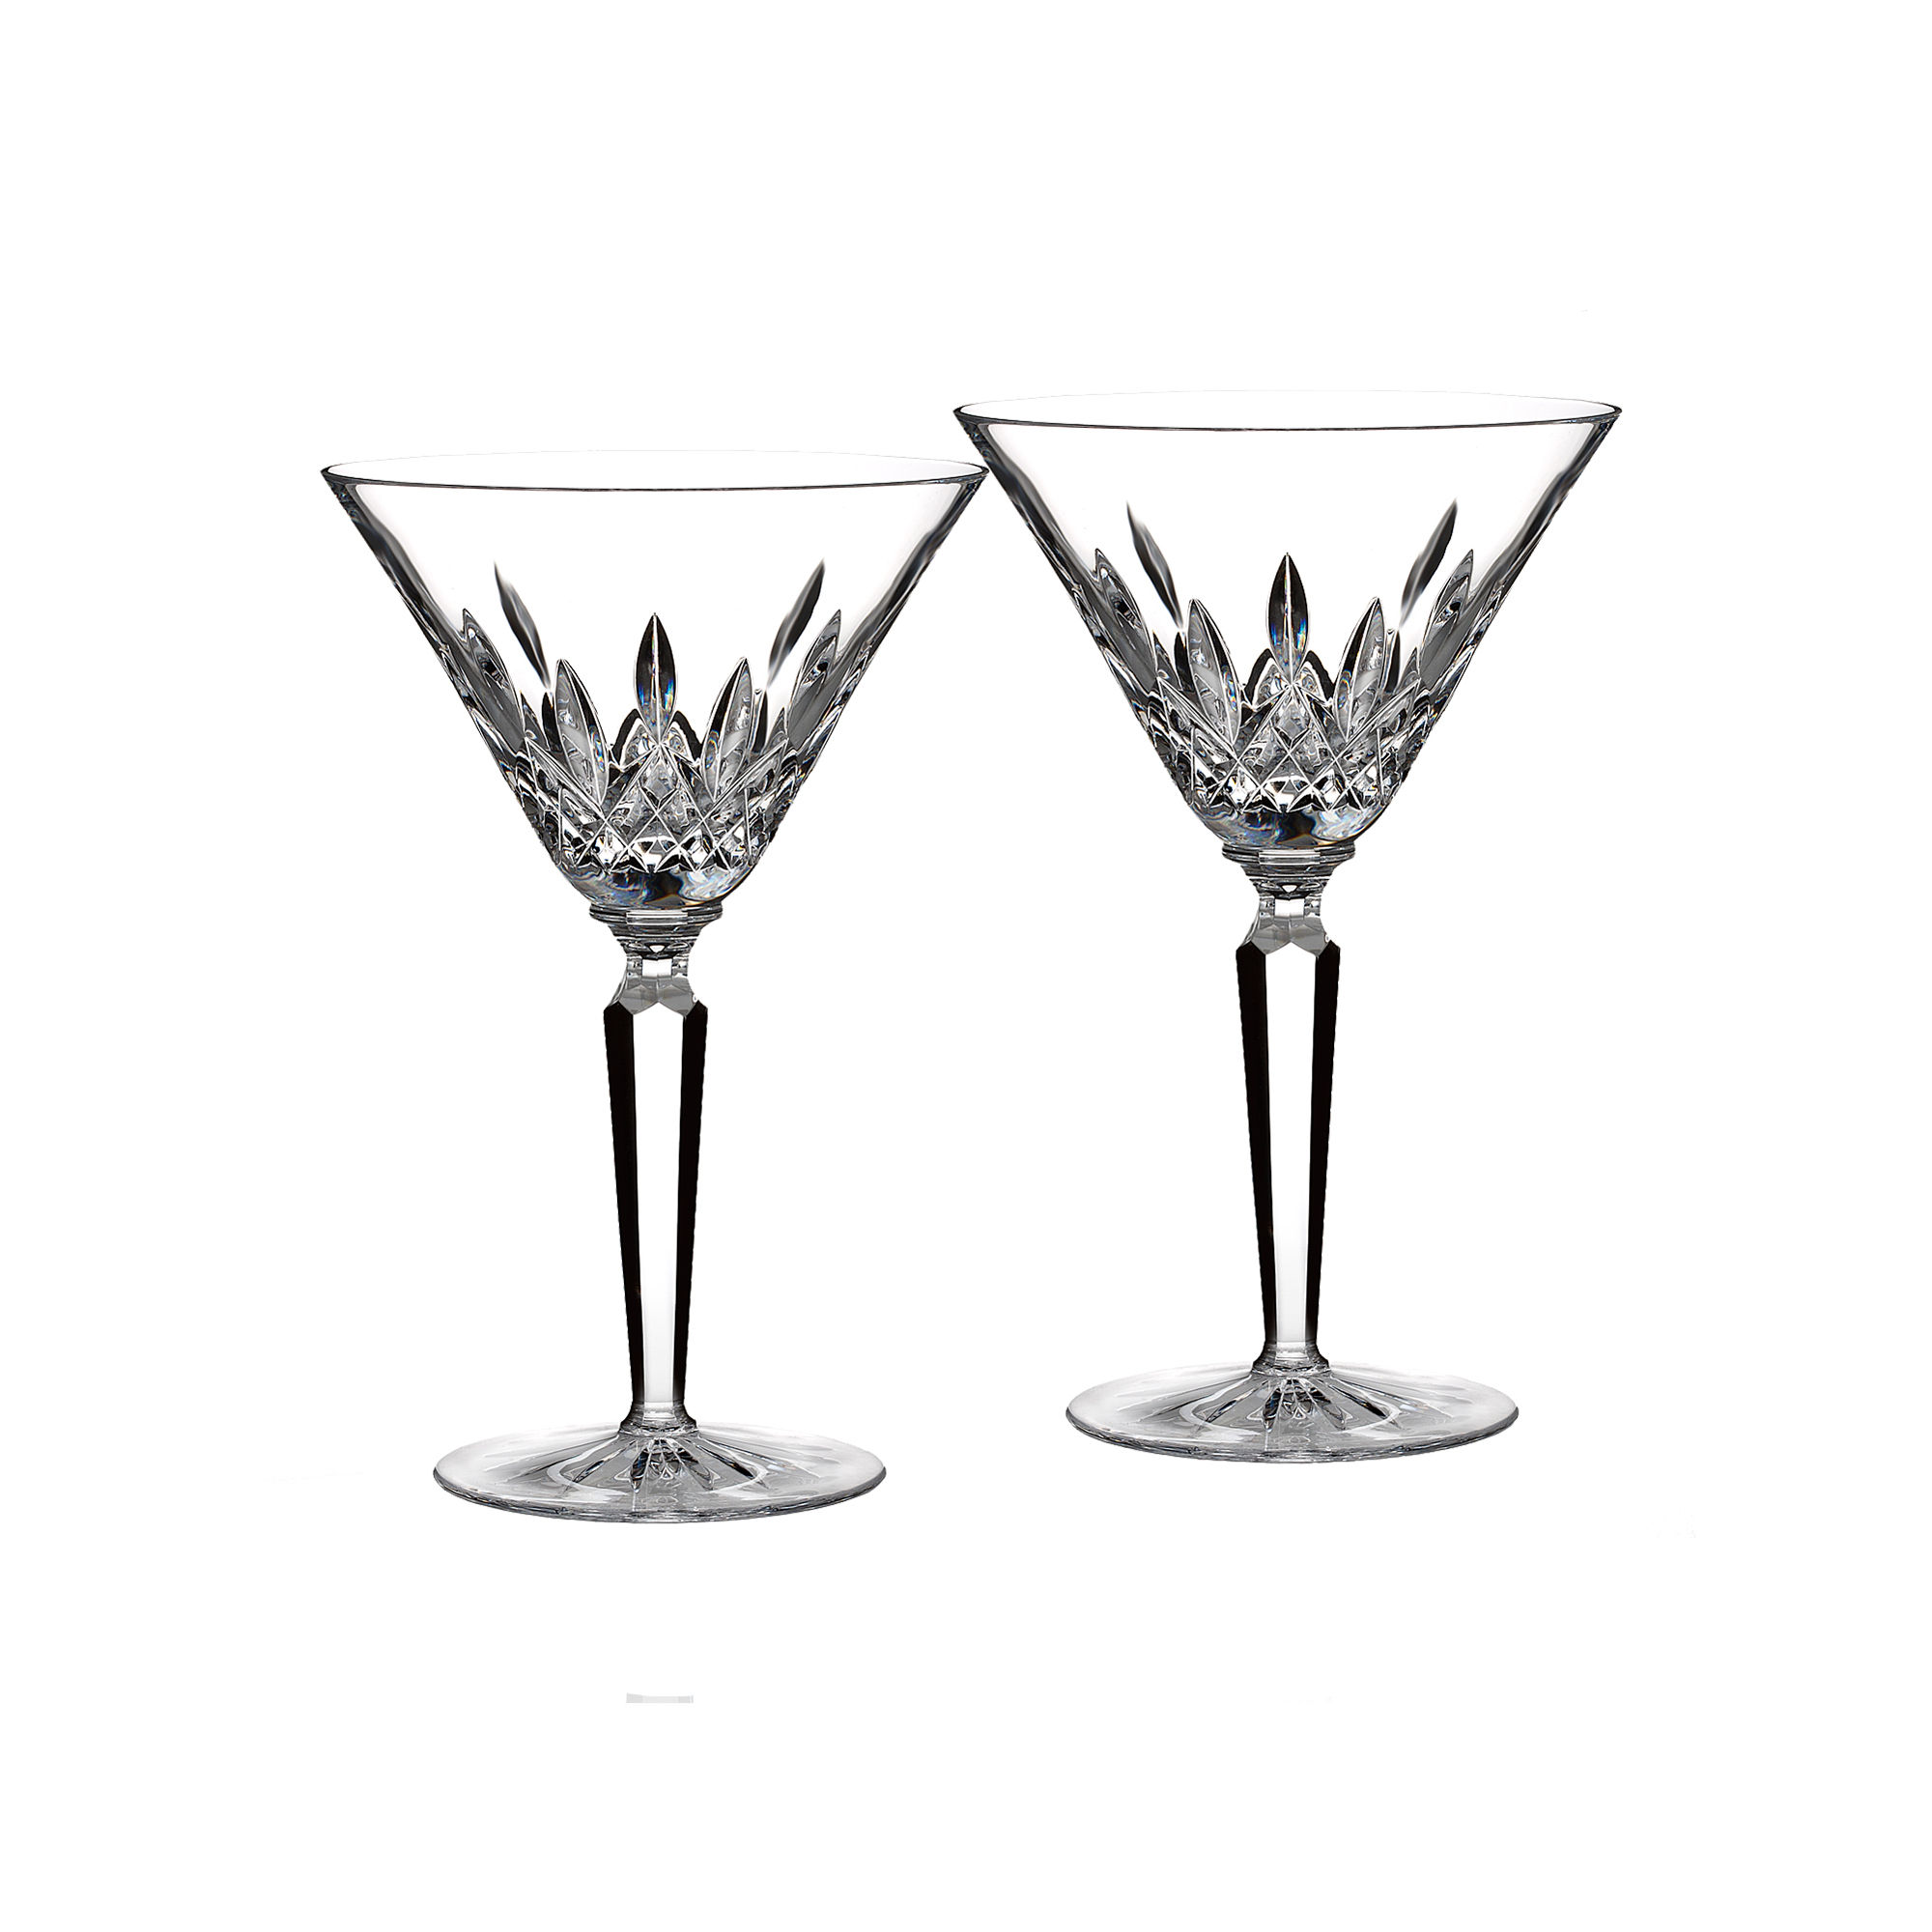 Waterford Lismore Classic Cocktail Glasses, Set of 2